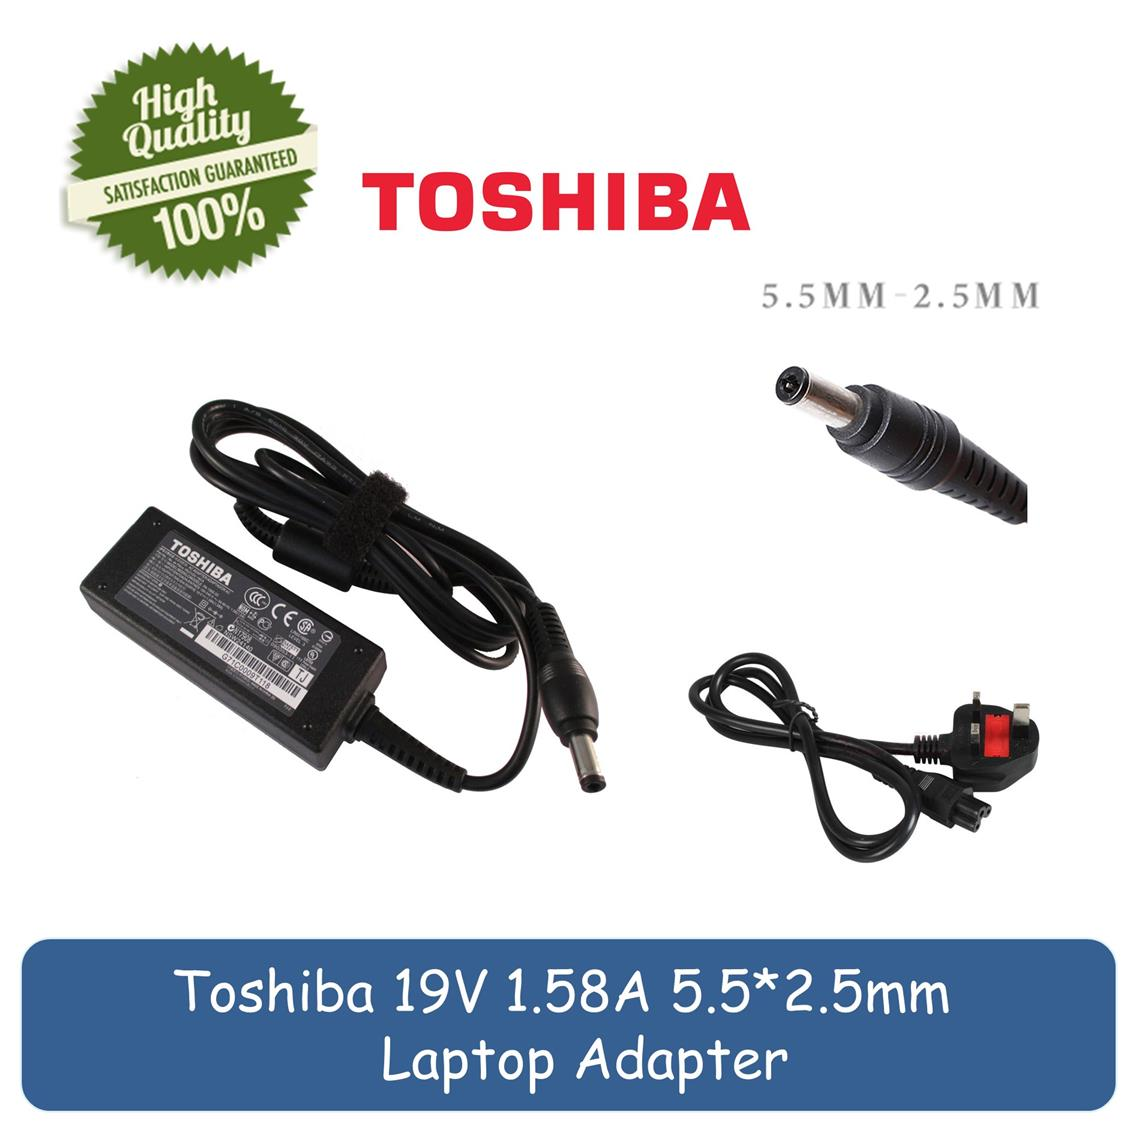 Toshiba 19V 1.58A NB255 W100 NB305 / Mini NB510 Laptop Charger Adapter